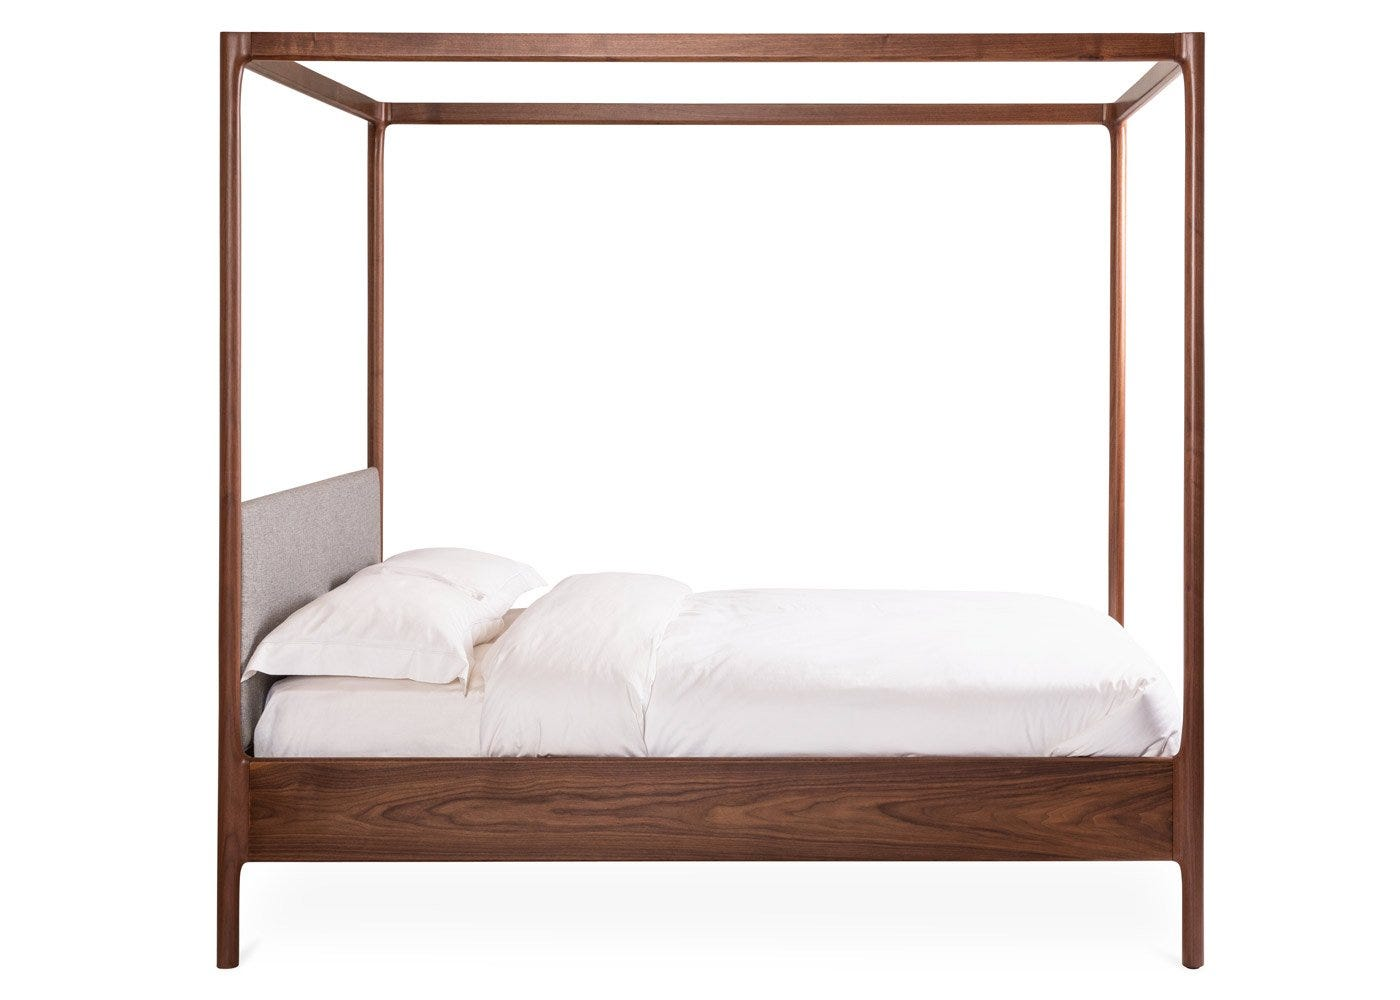 Marlow 4 Poster Bed - Side Profile.